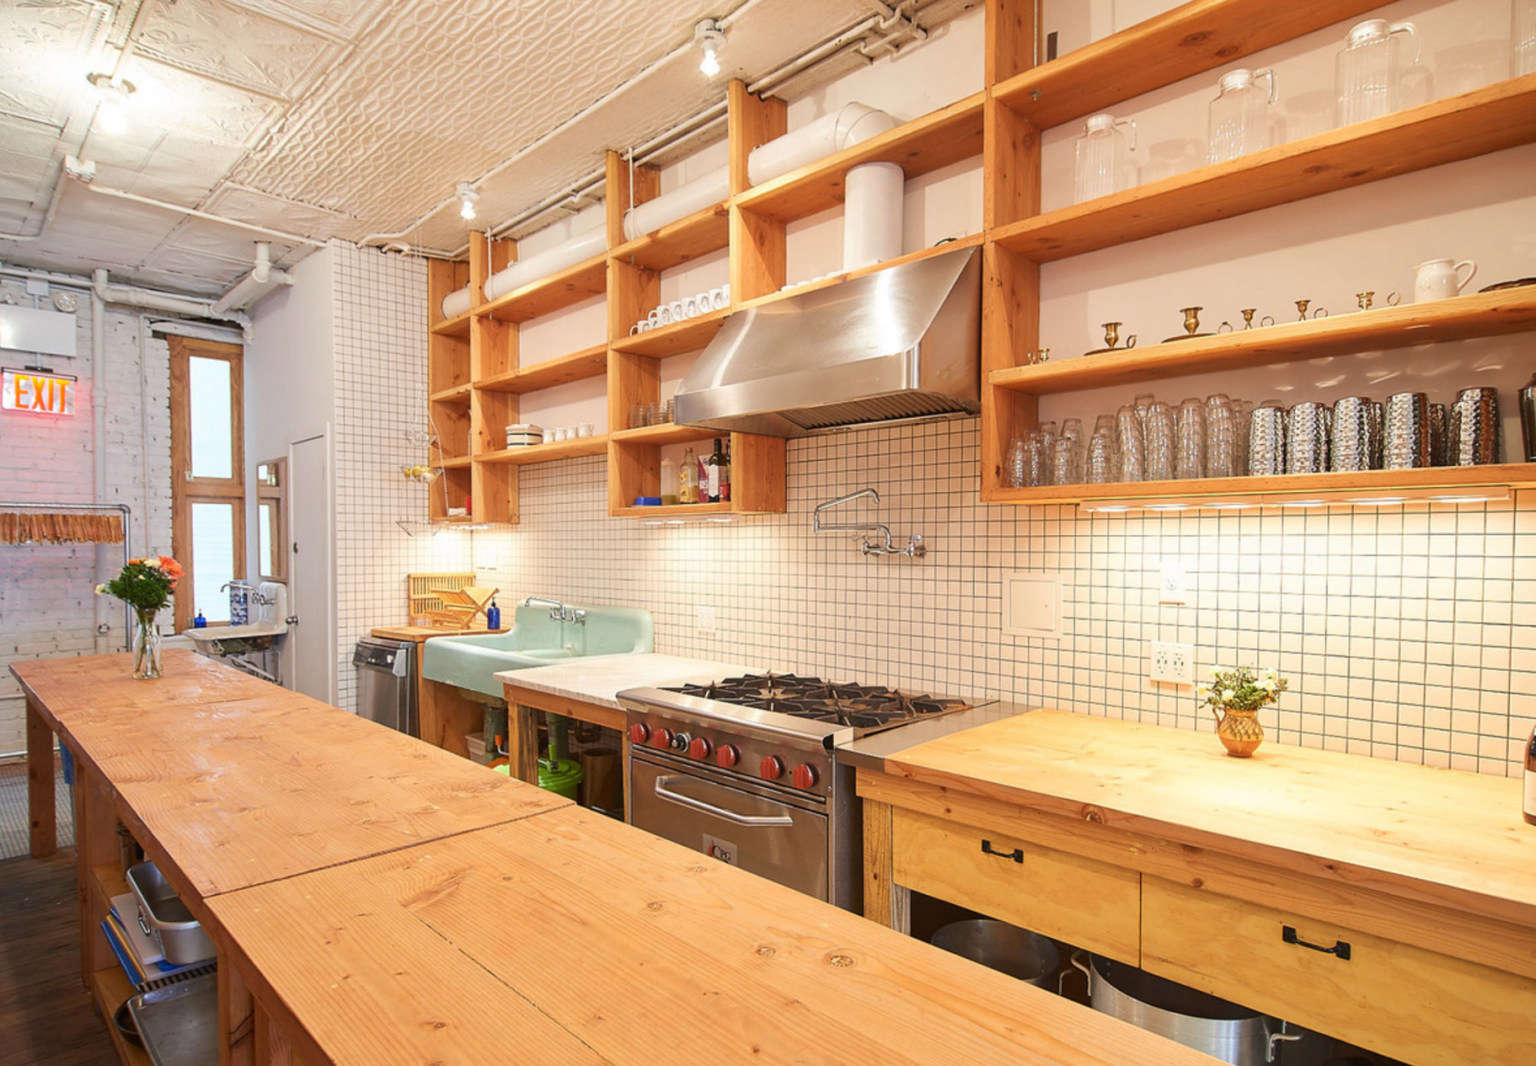 Kitchen of the Week: A Clandestine Private Dining Loft in NYC's Chinatown